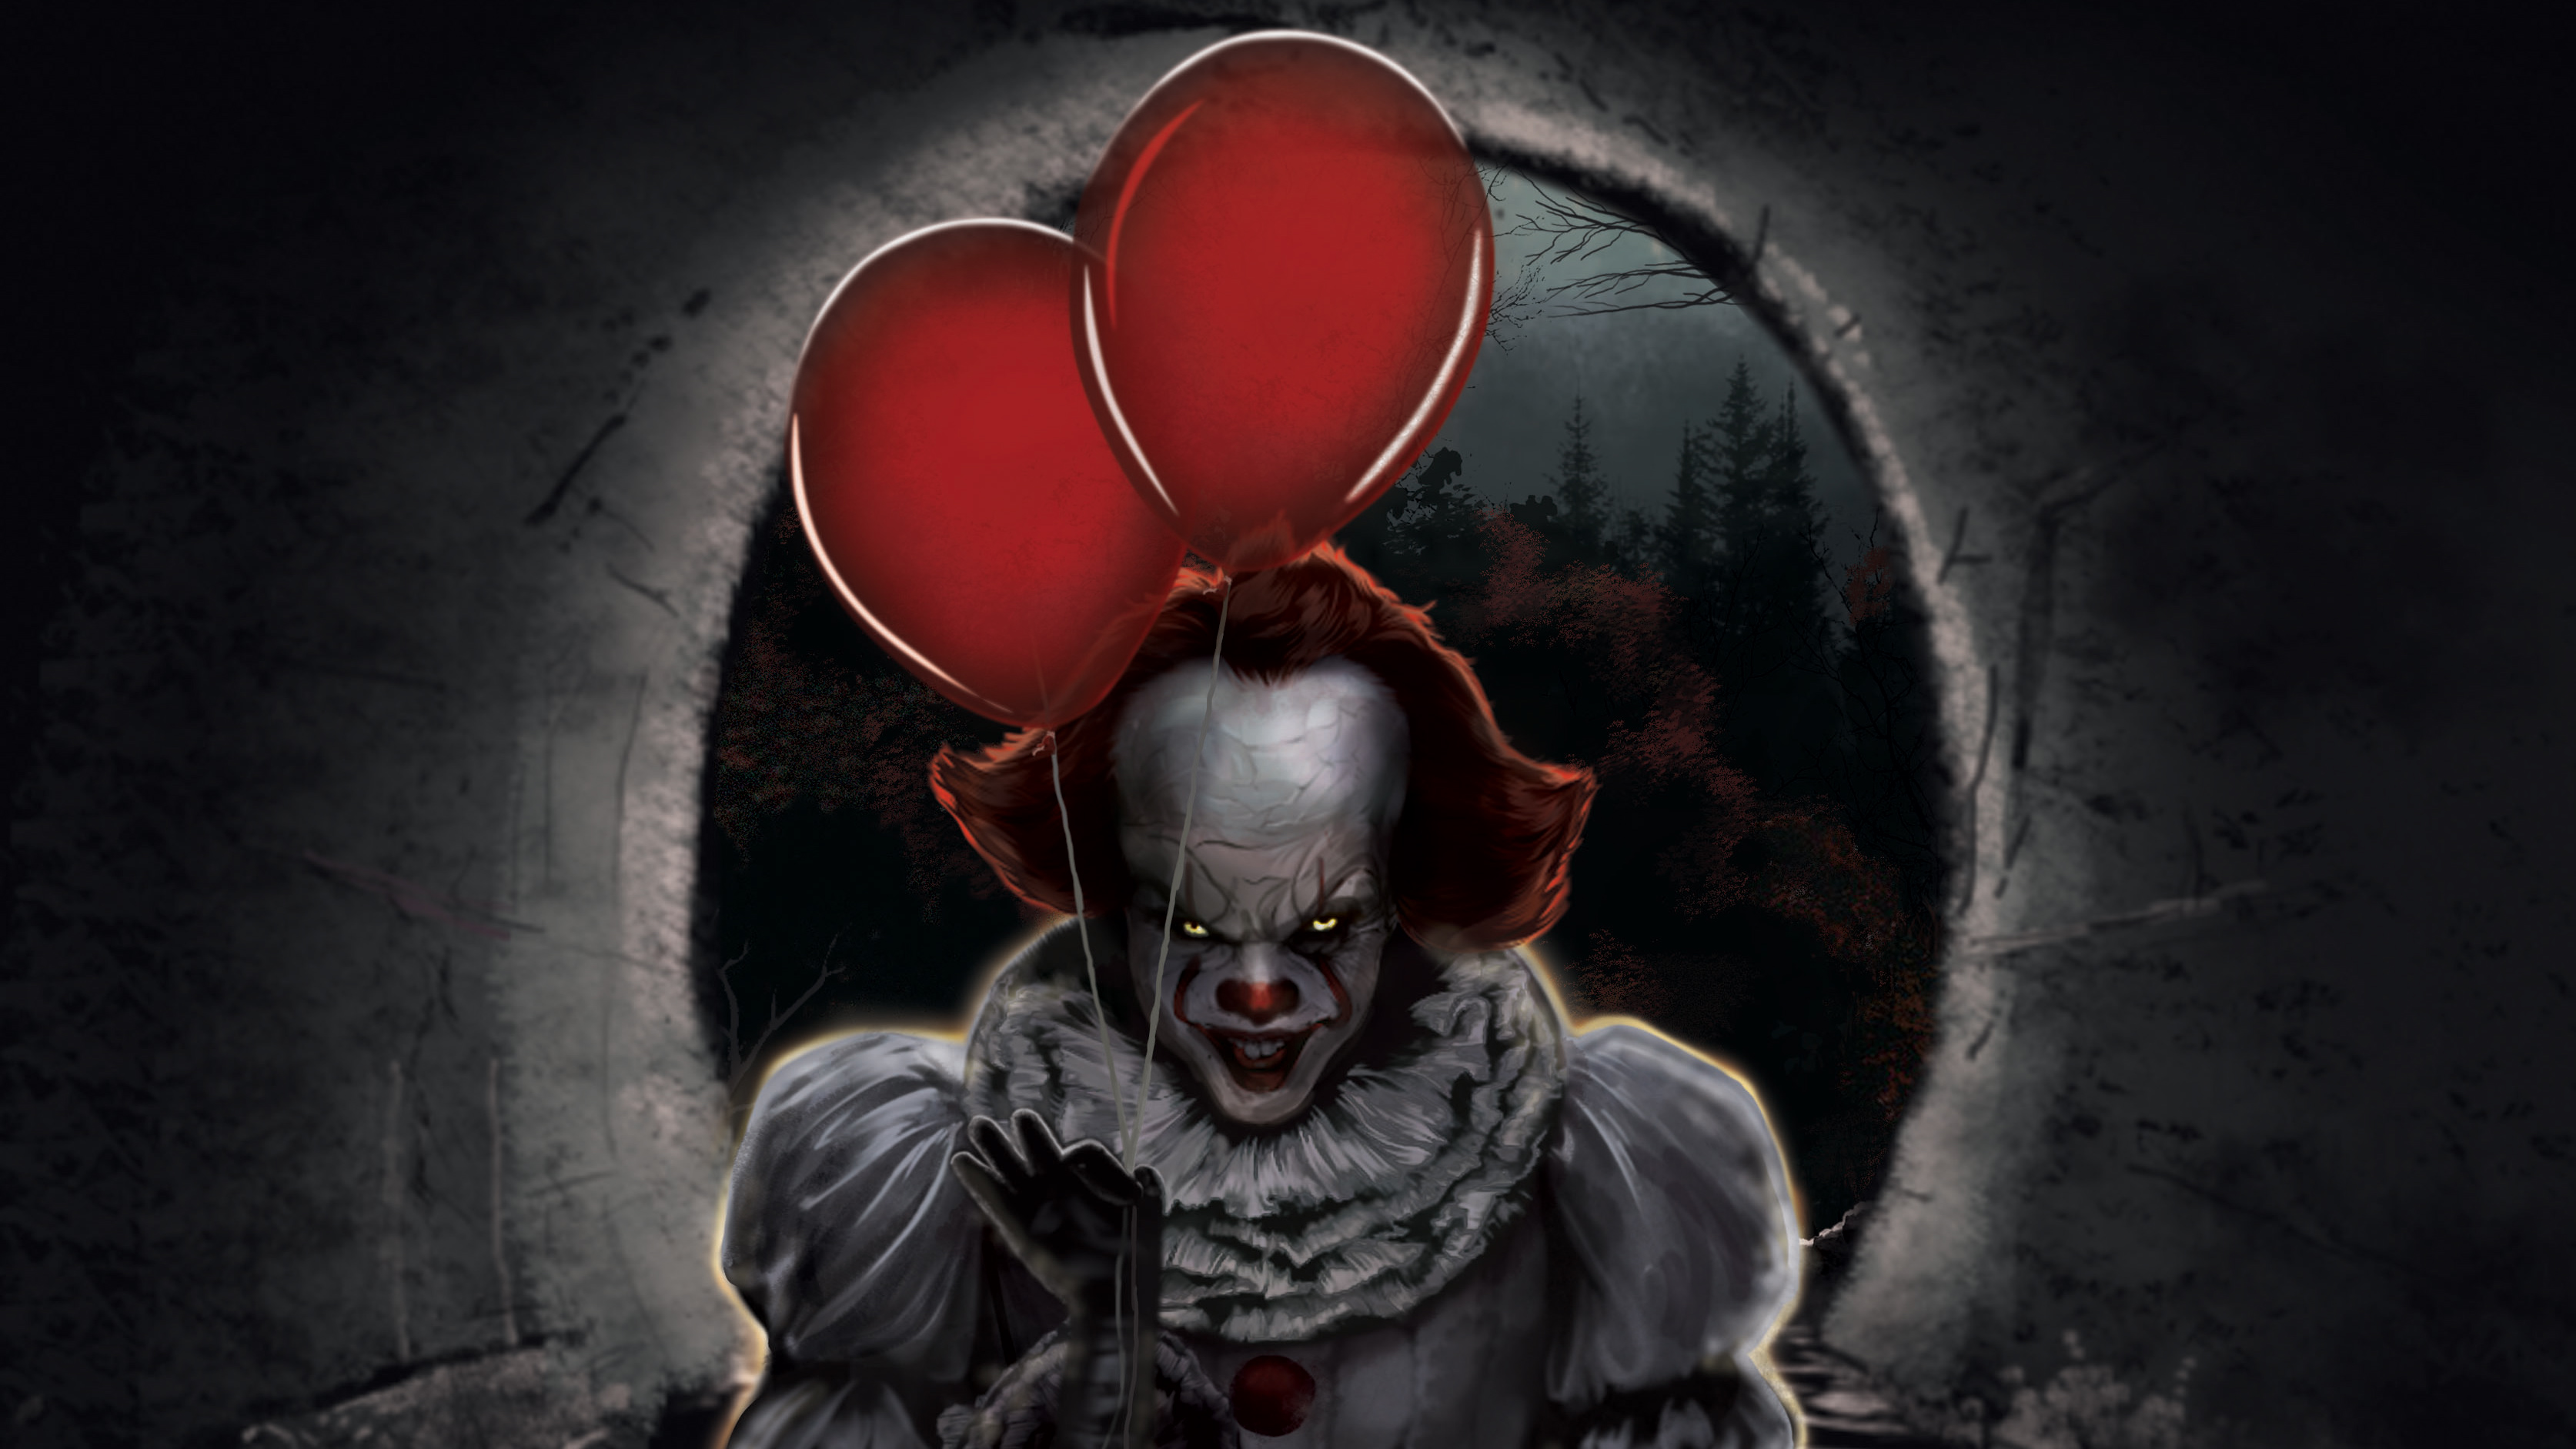 Pennywise Ballons Hd Movies 4k Wallpapers Images Backgrounds